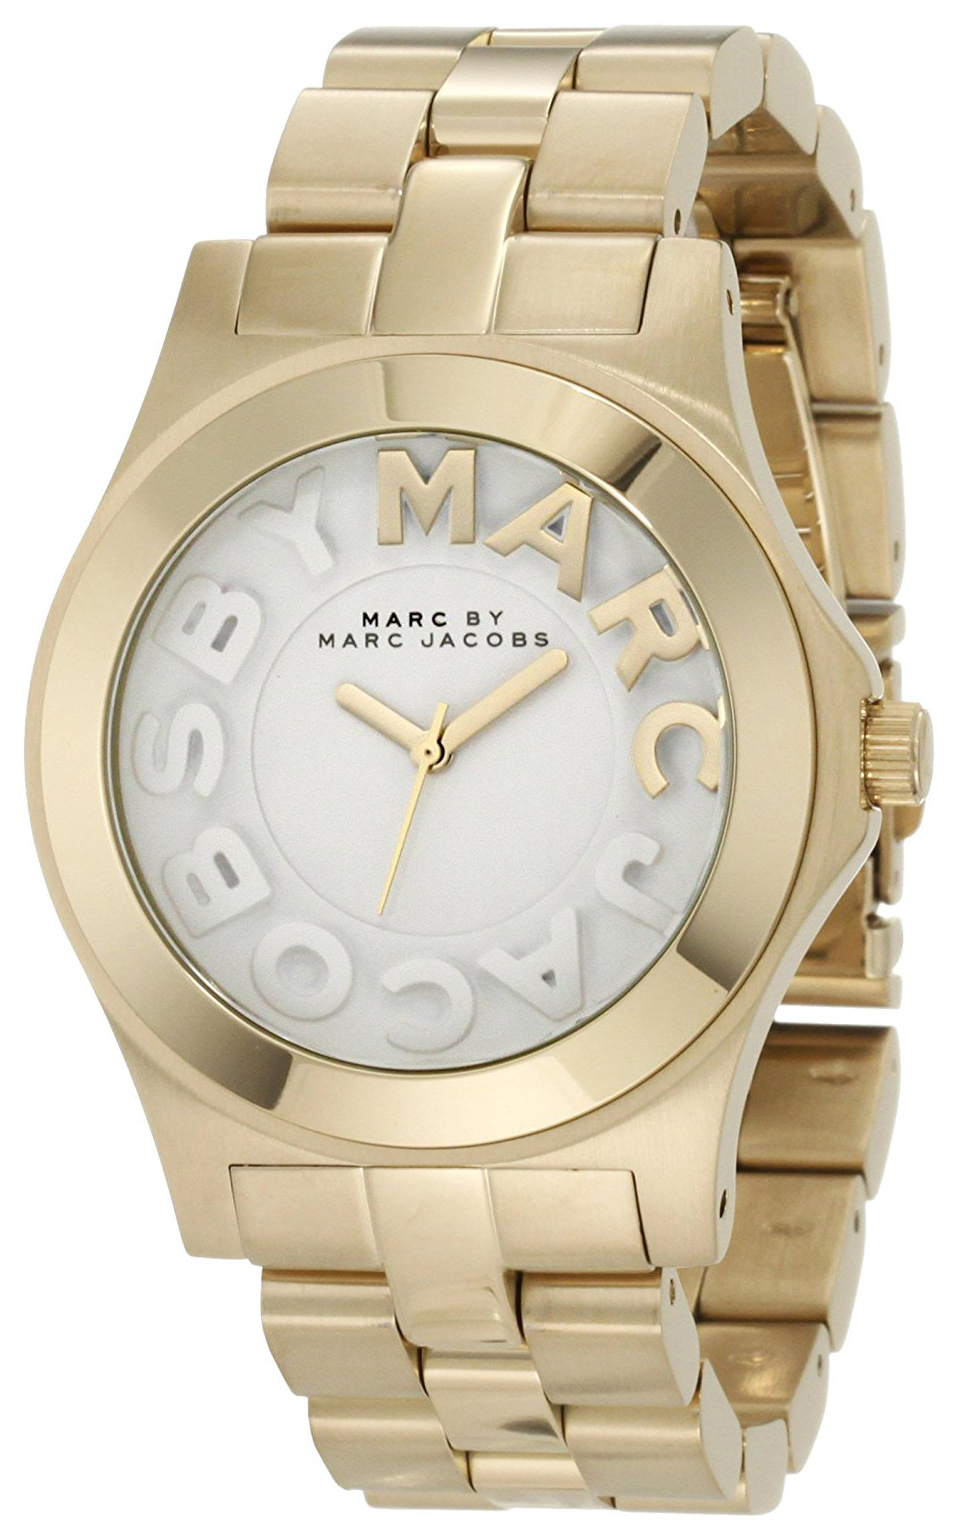 Marc by Marc Jacobs Rivera Damklocka MBM3134 Vit/Gulguldtonat stål Ø40 mm - Marc by Marc Jacobs